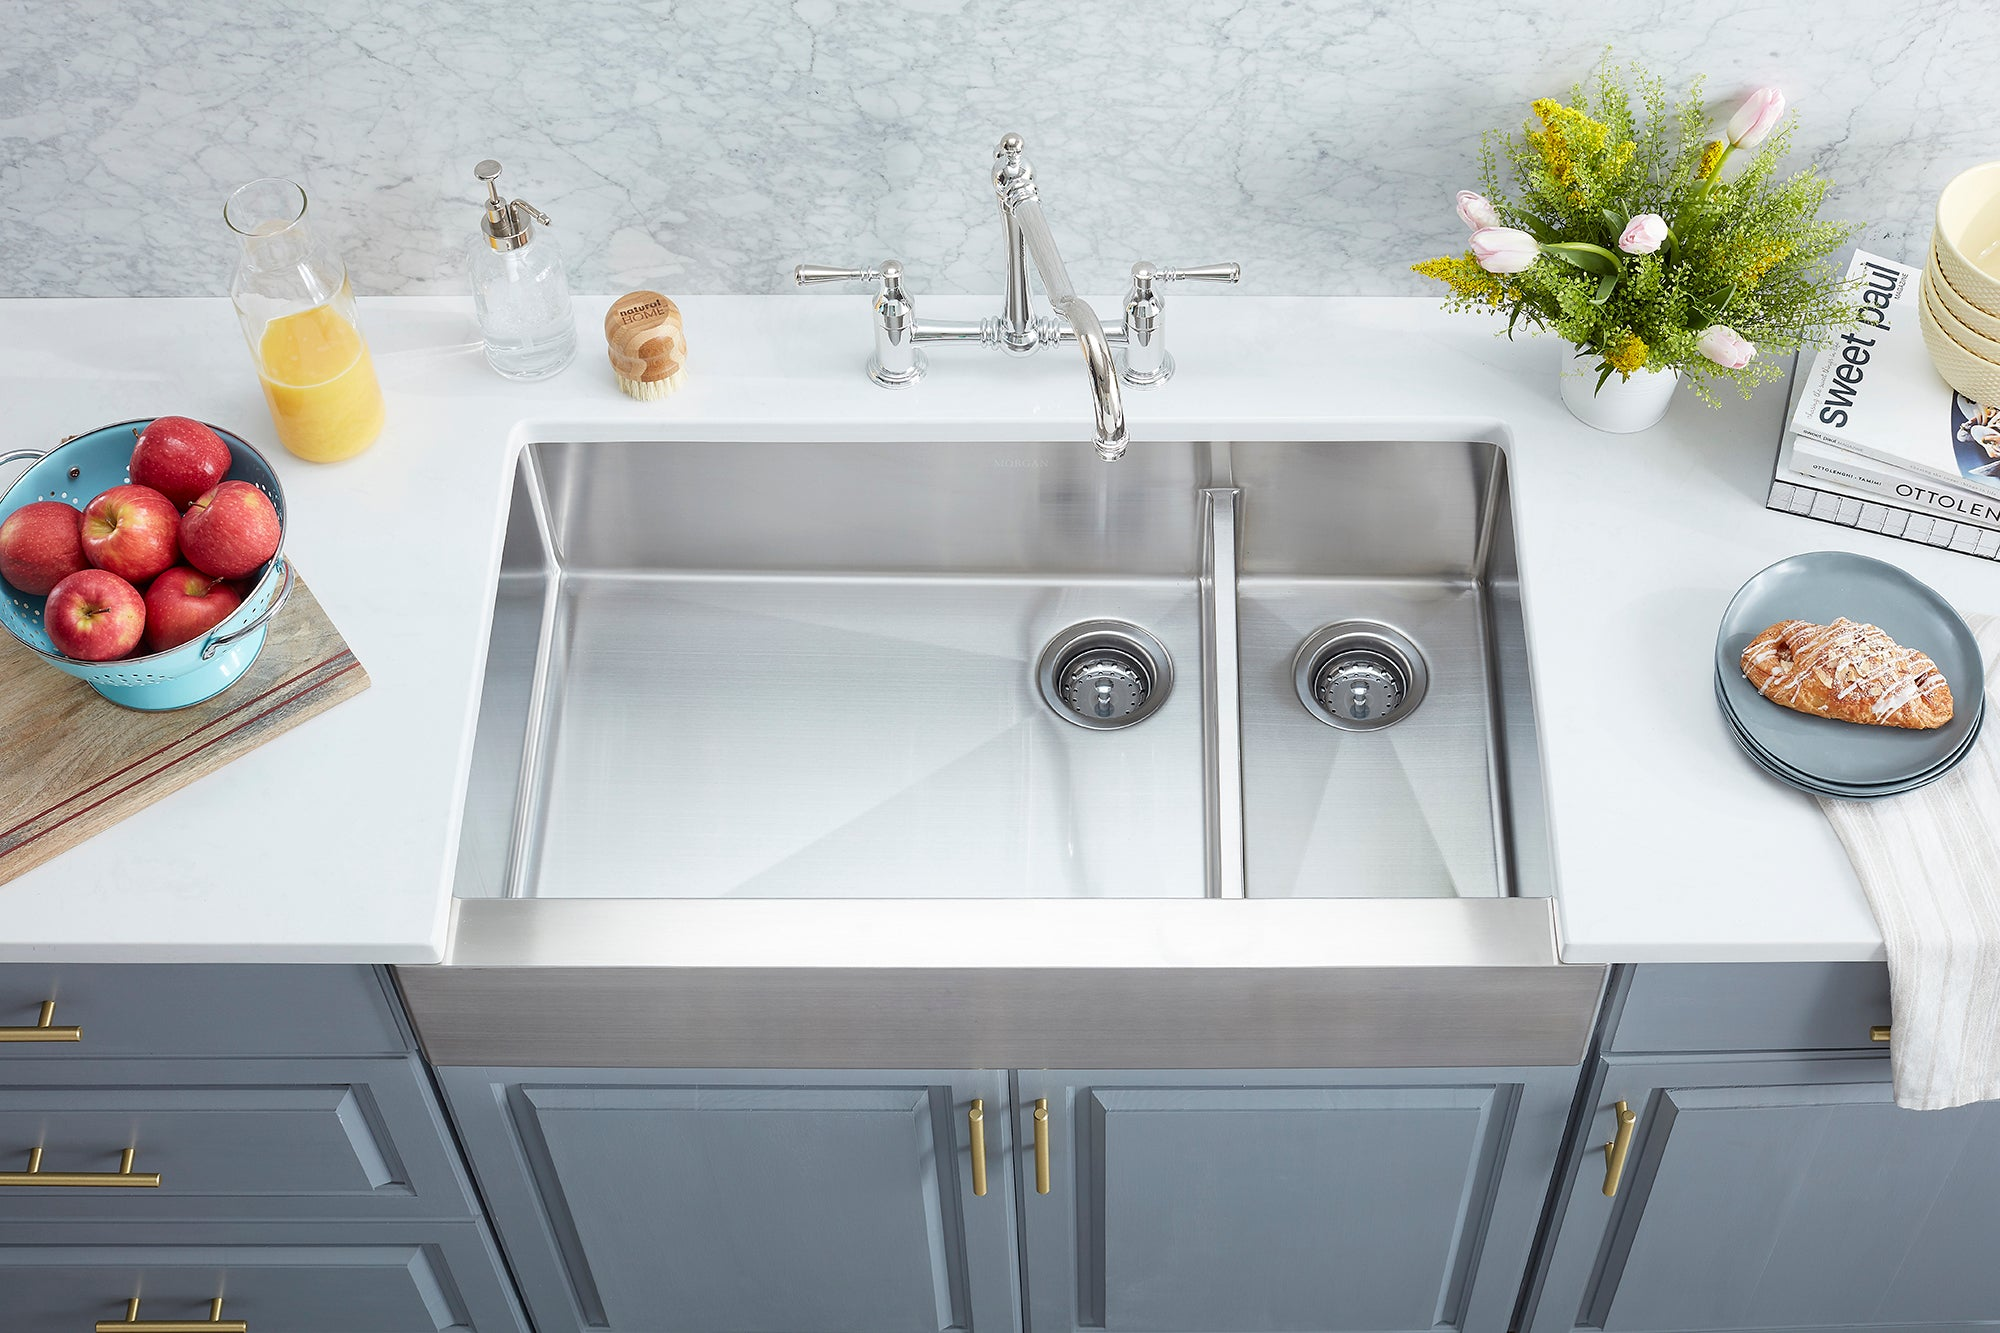 Morgan Tap and Basin Sullivan Series 34.5 inch Apron Front Stainless Steel Double Bowl Kitchen Sink with Offset Corner Drain